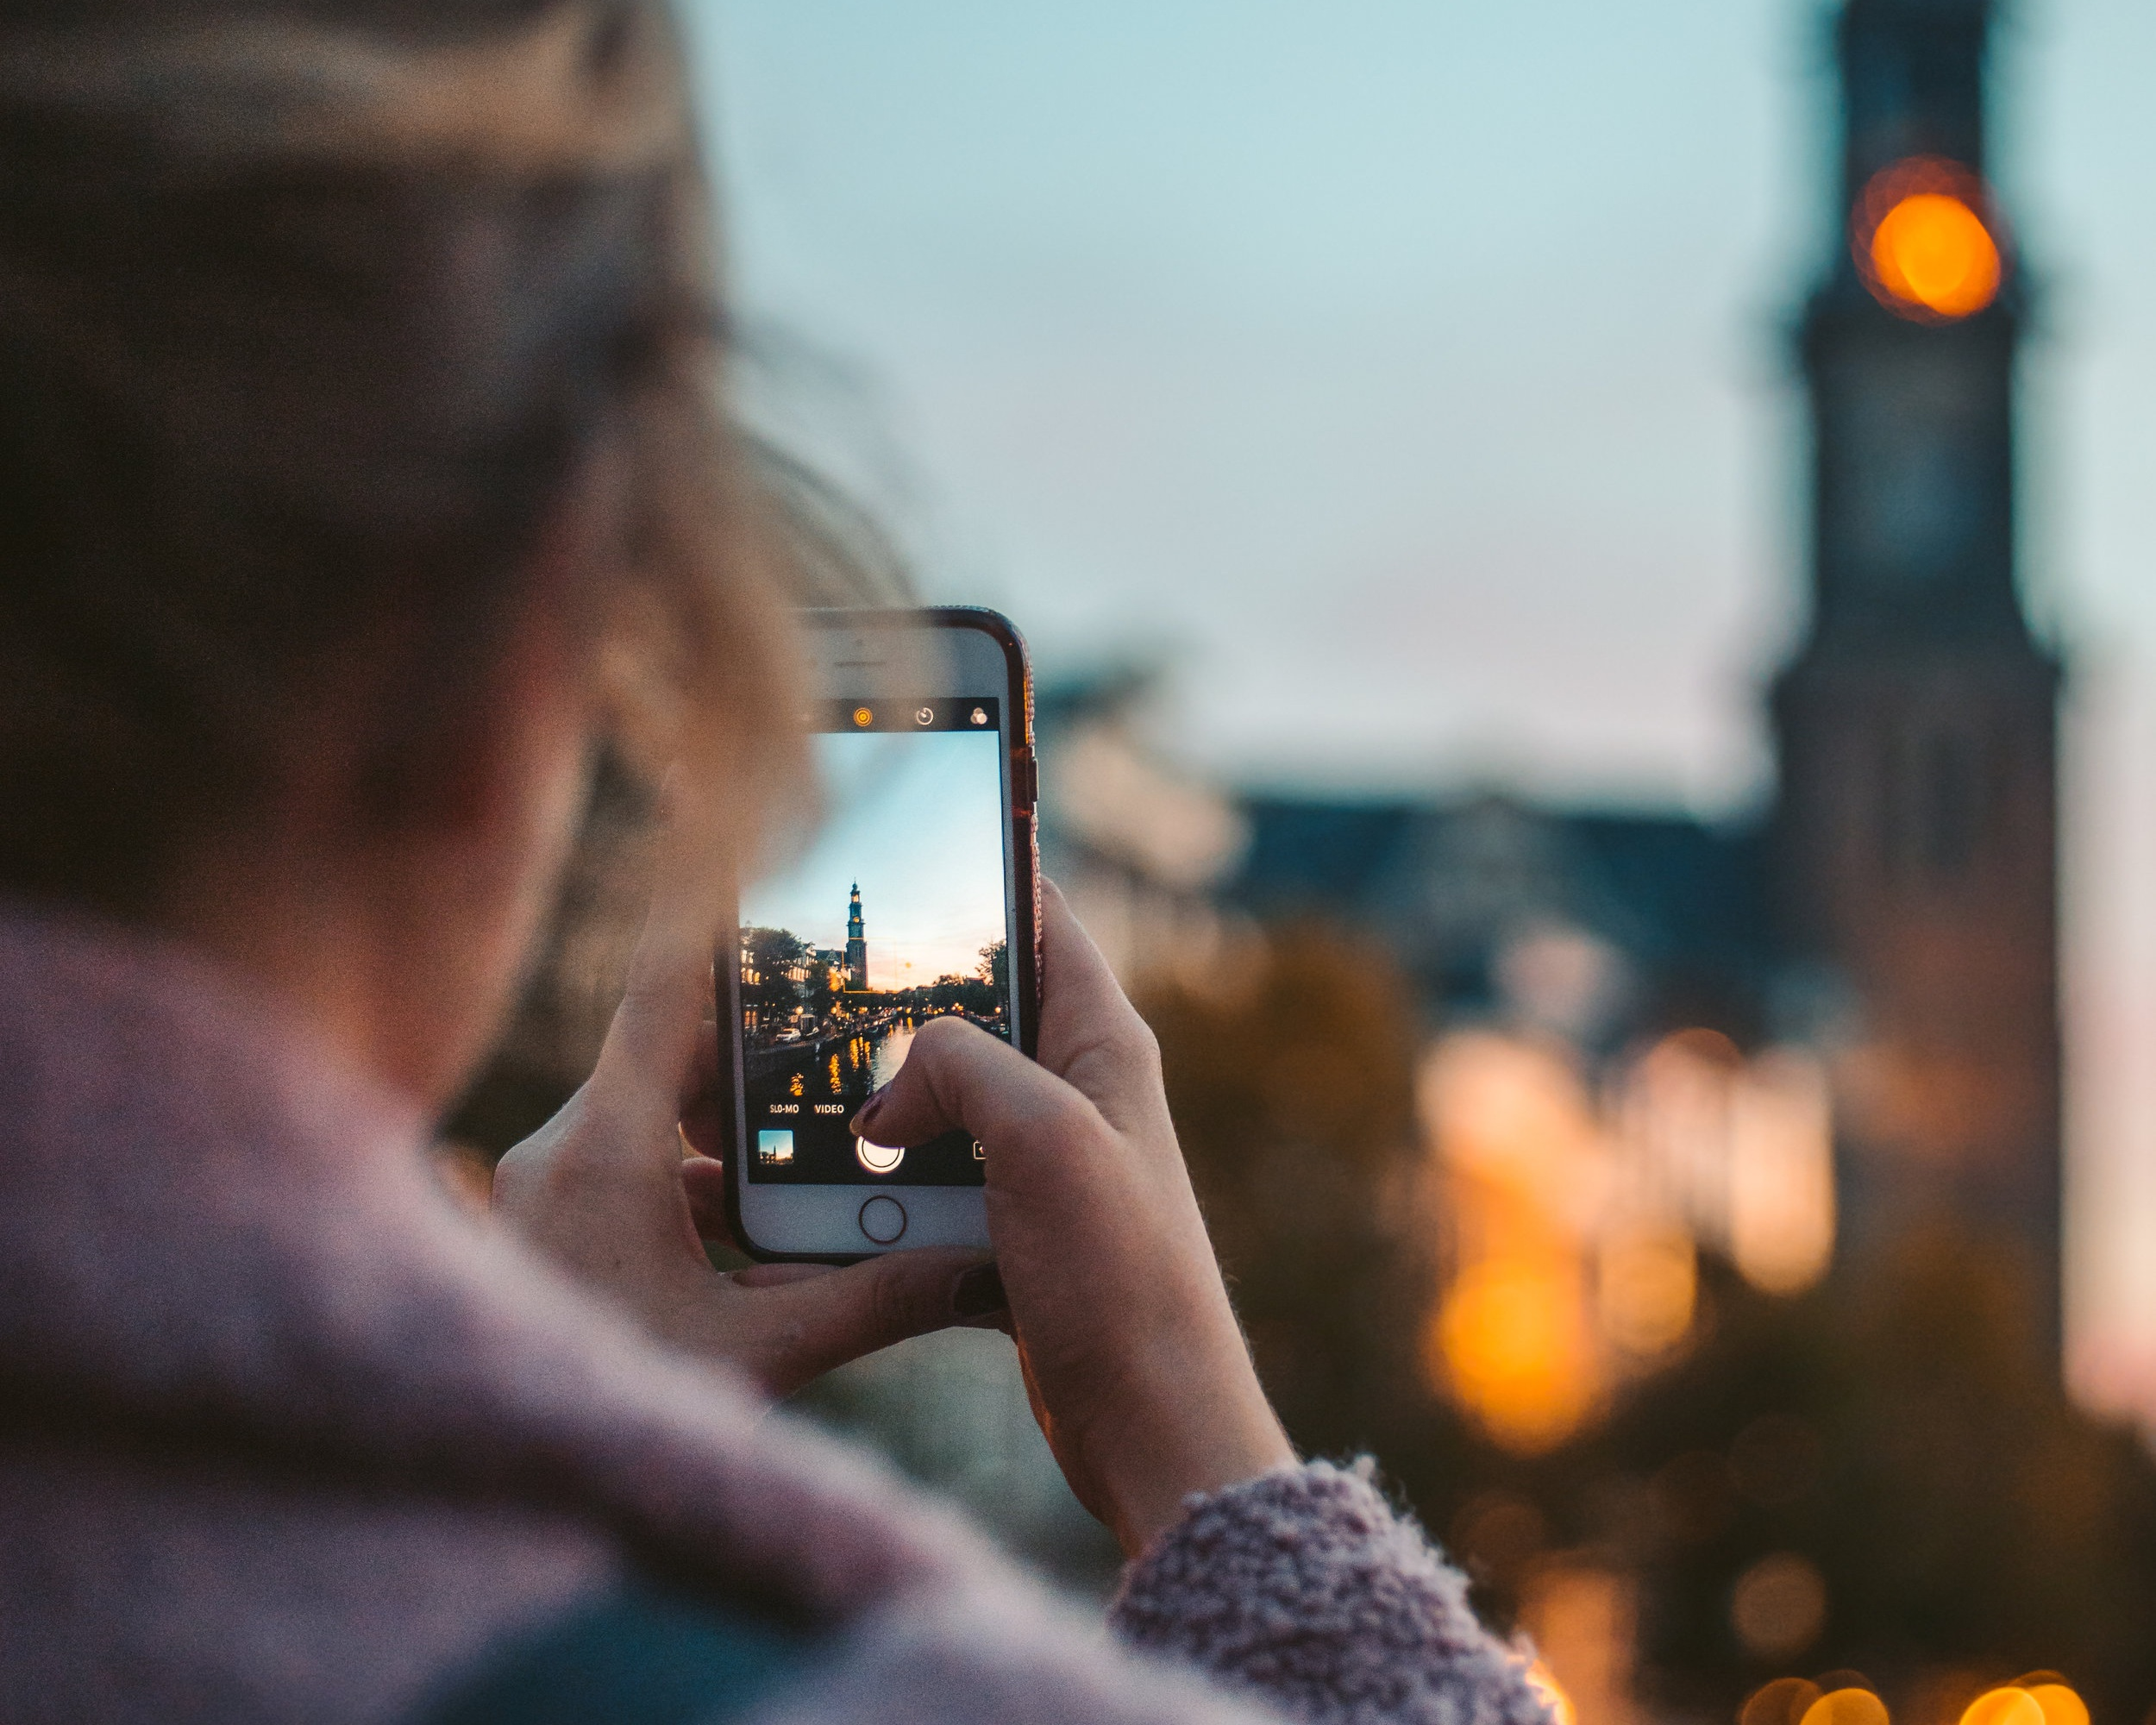 submitting photos - Technology is hard. Not everyone has an iPhone, Android or other smart phone device.No worries! To the right is a list of photos we accept. Email support@bigfootinspections.co for more information.Or you can contact us at 719-301-7157 M-F 8am-5pm.